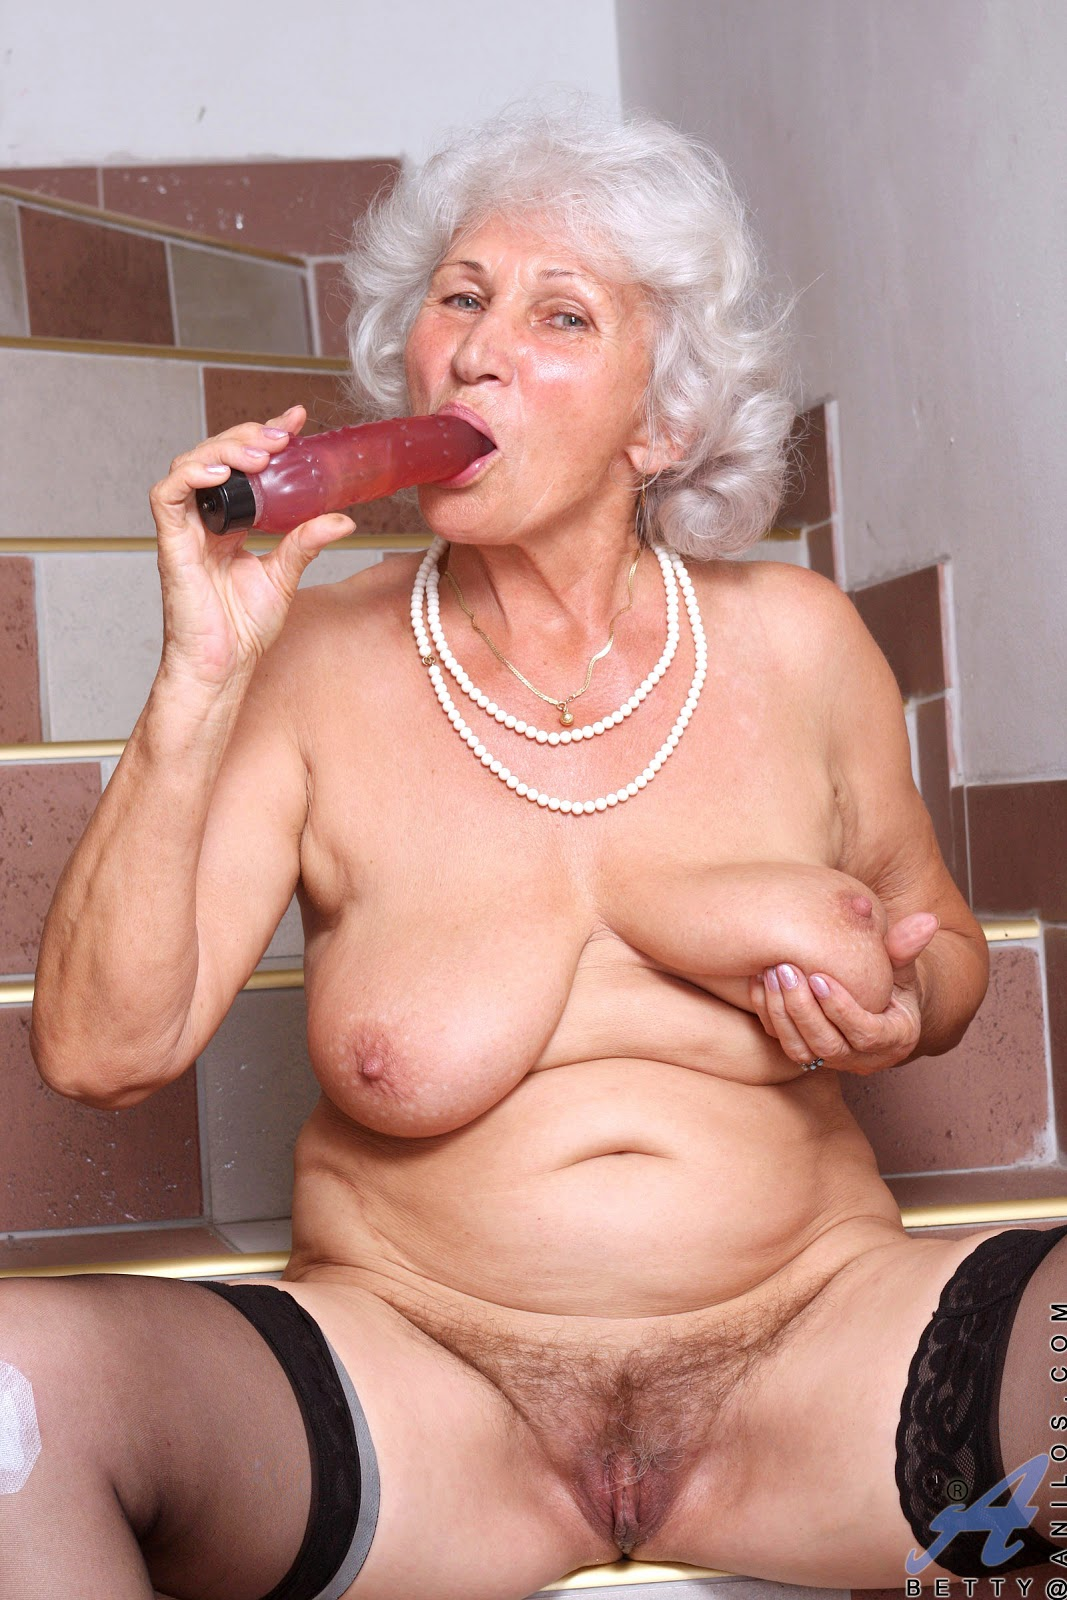 Horny older women.com